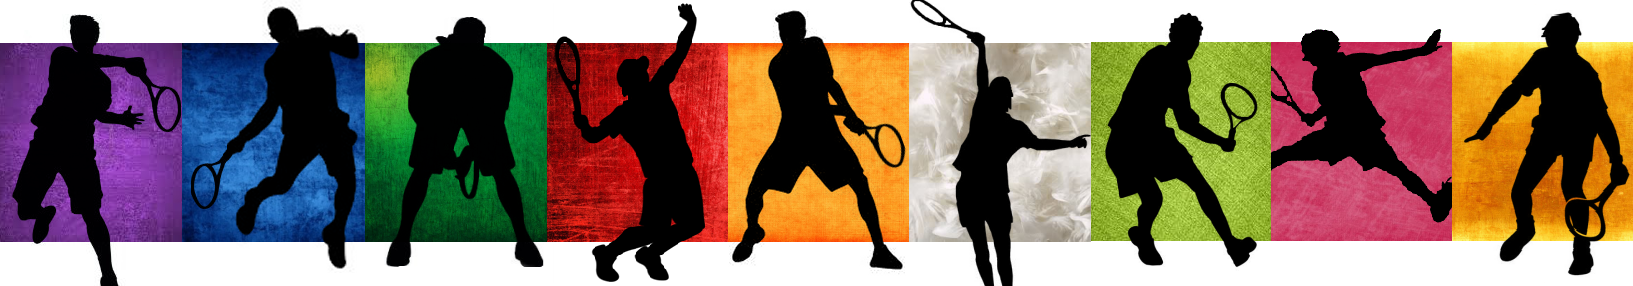 prince_of_tennis___seigaku_team_banner_by_swisskun-d7s0v4l.png